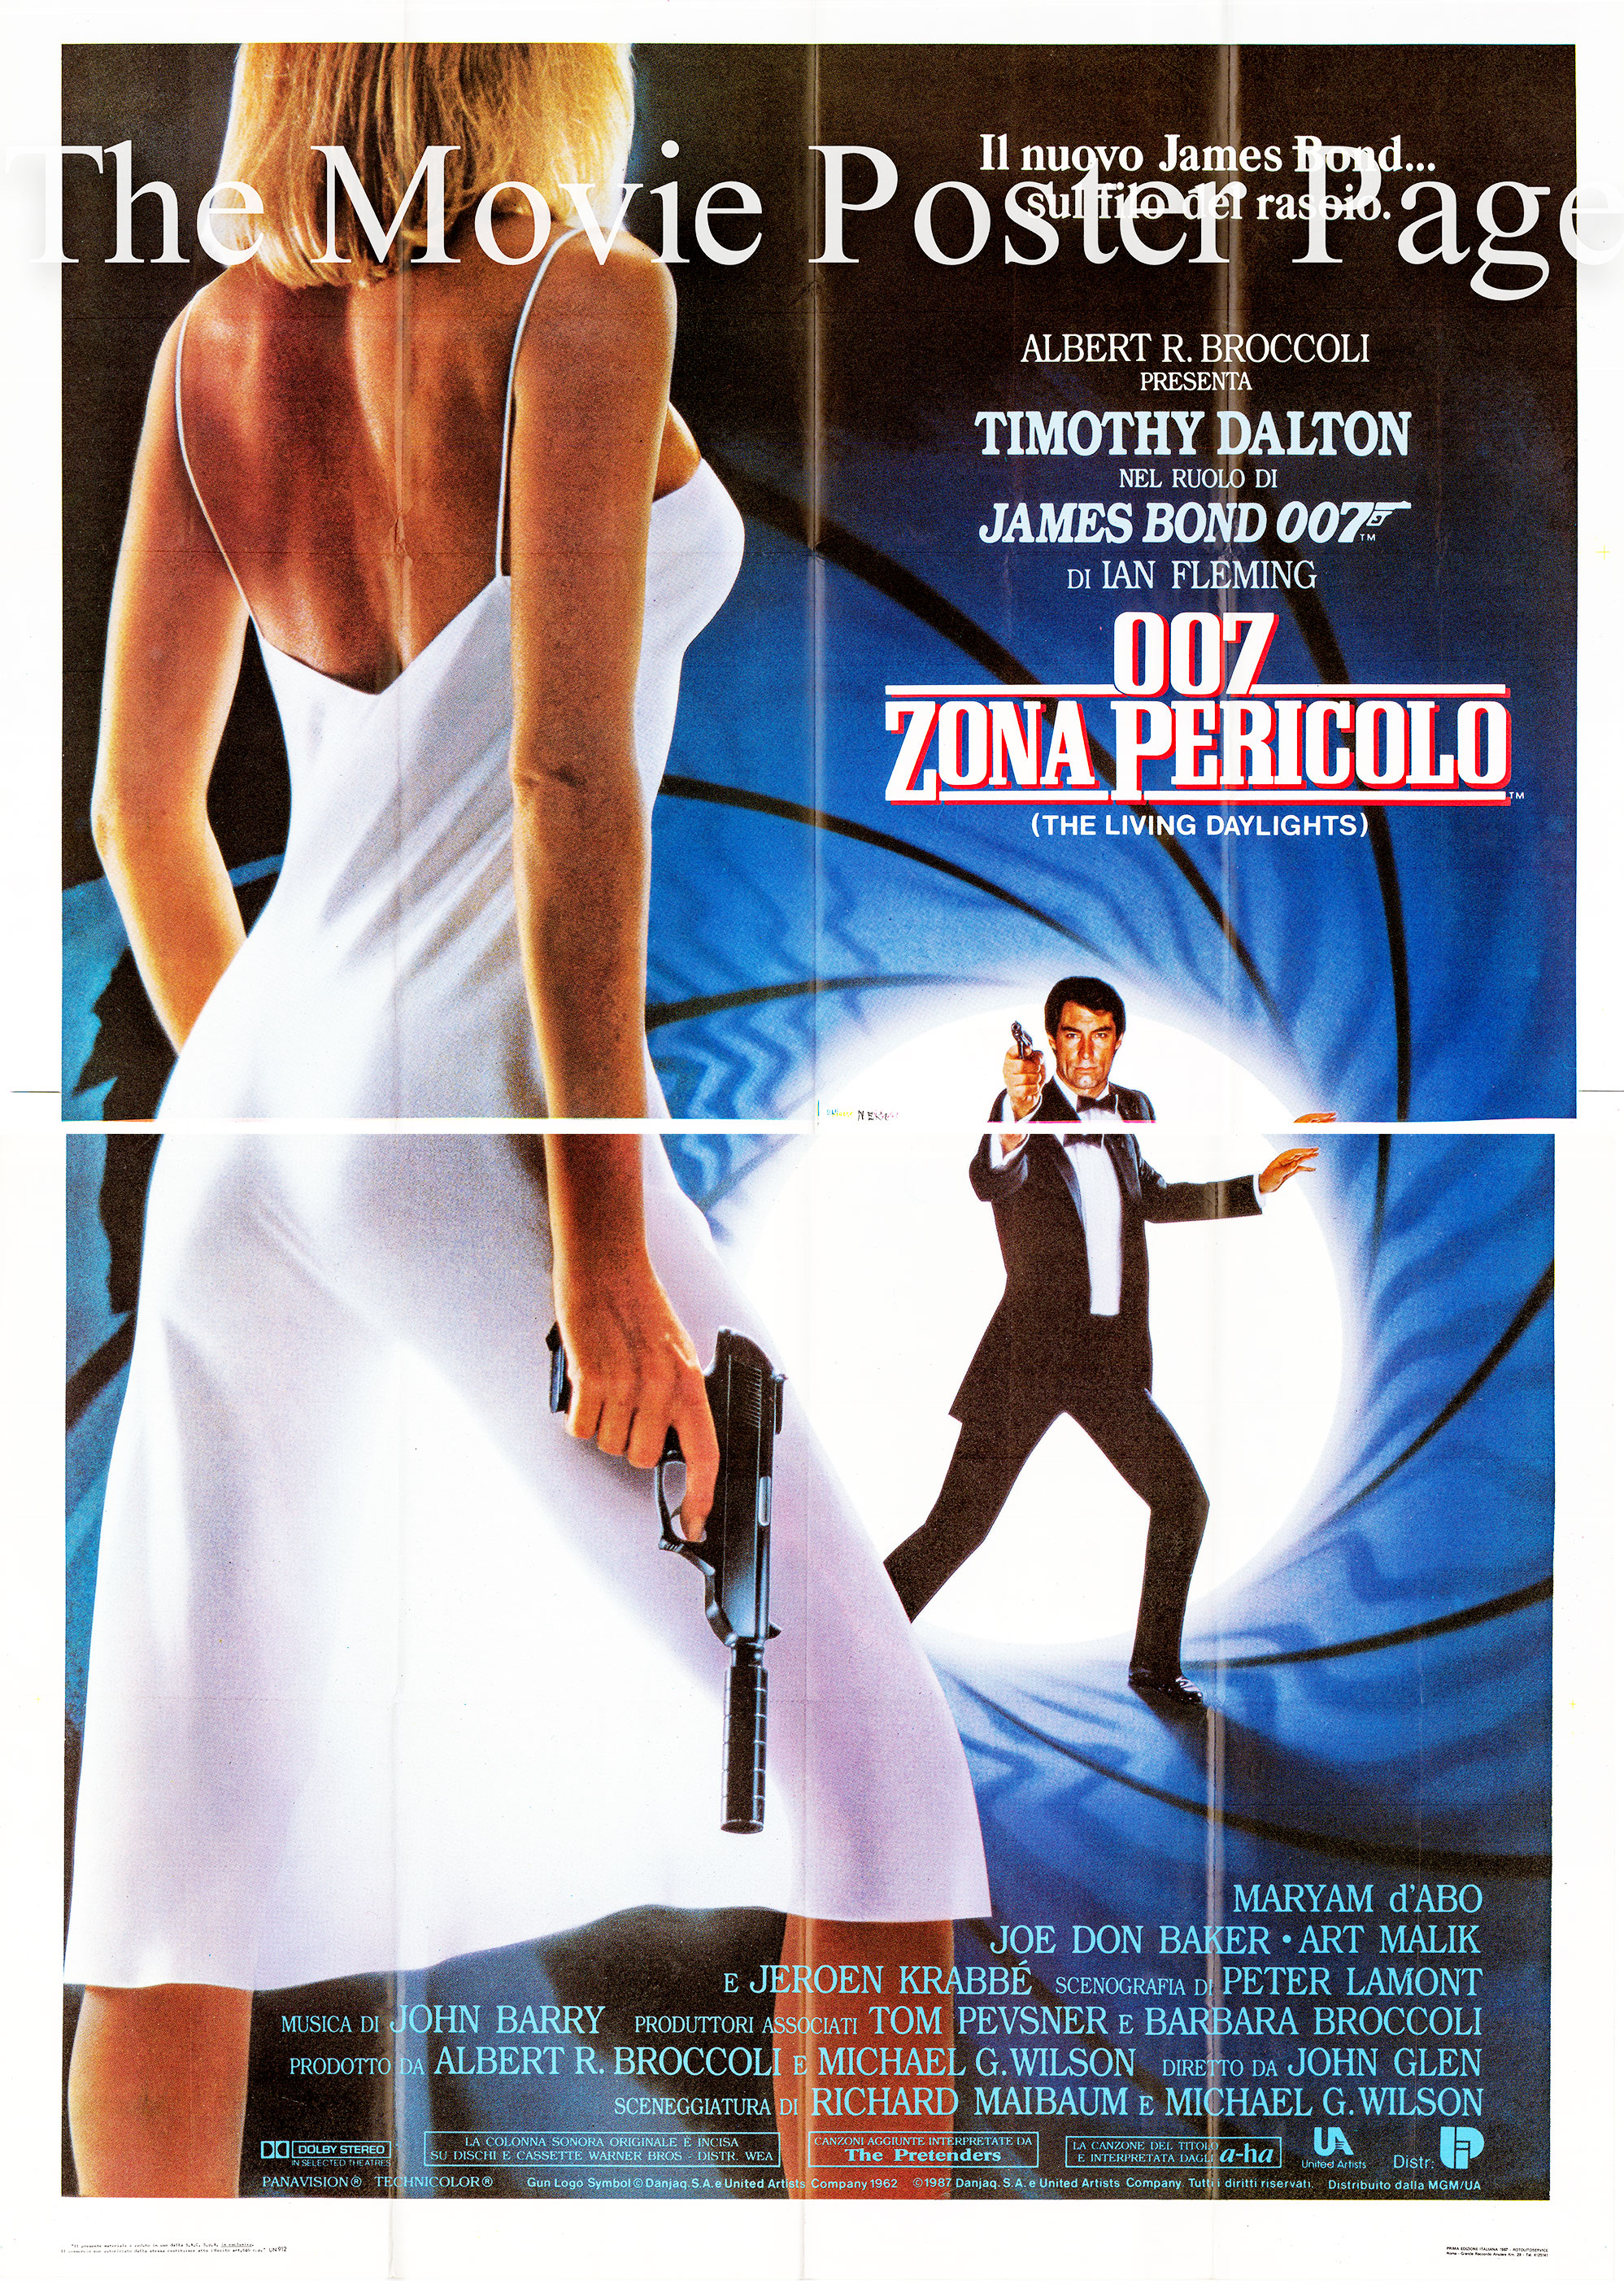 Pictured is an Italian four-sheet promotional poster for the 1987 John Glen film The Living Daylights starring Timothy Dalton as James Bond.